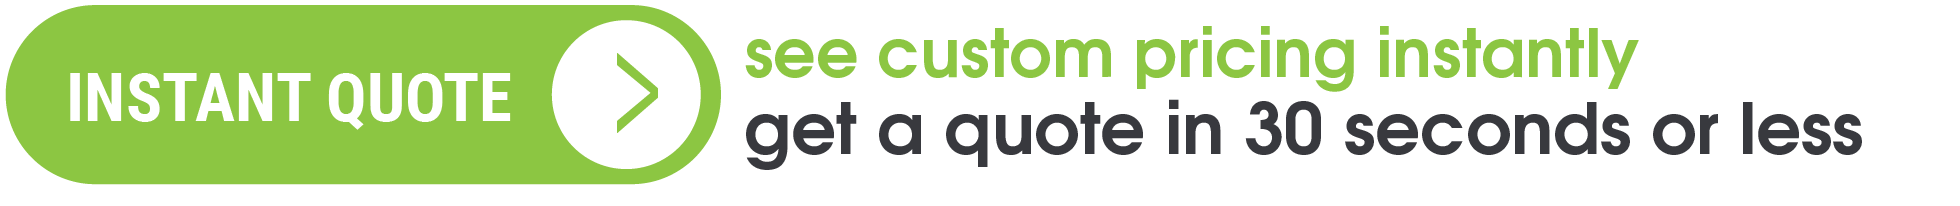 Request a Quote - Bucket Hats